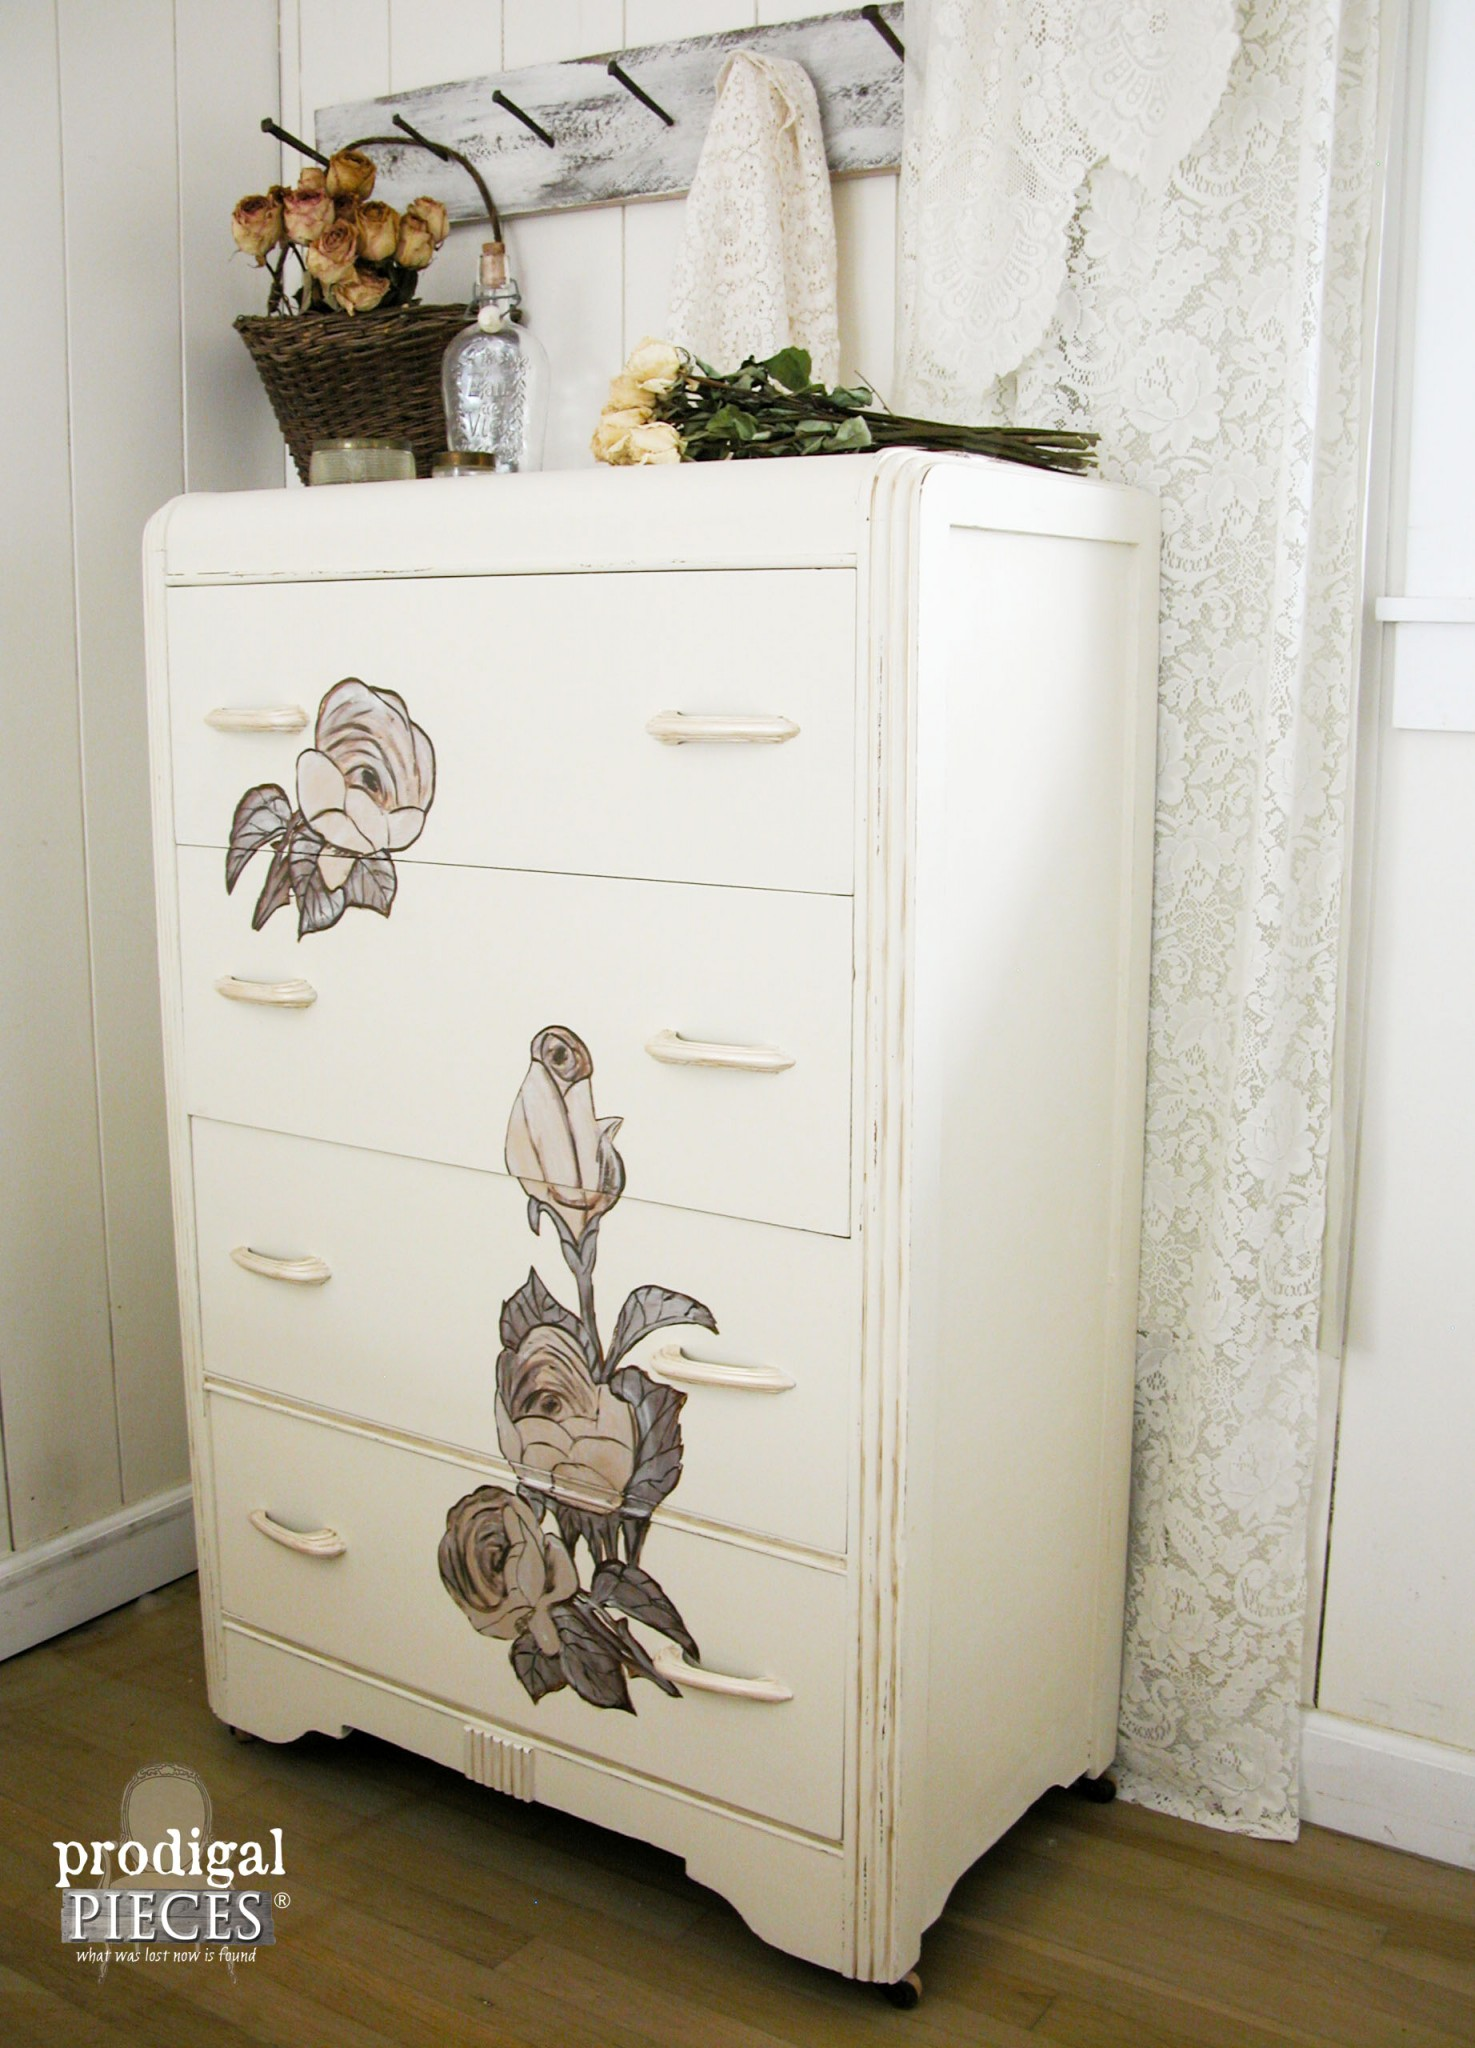 Side View of Shabby Chic Chest of Drawers by Prodigal Pieces | www.prodigalpieces.com